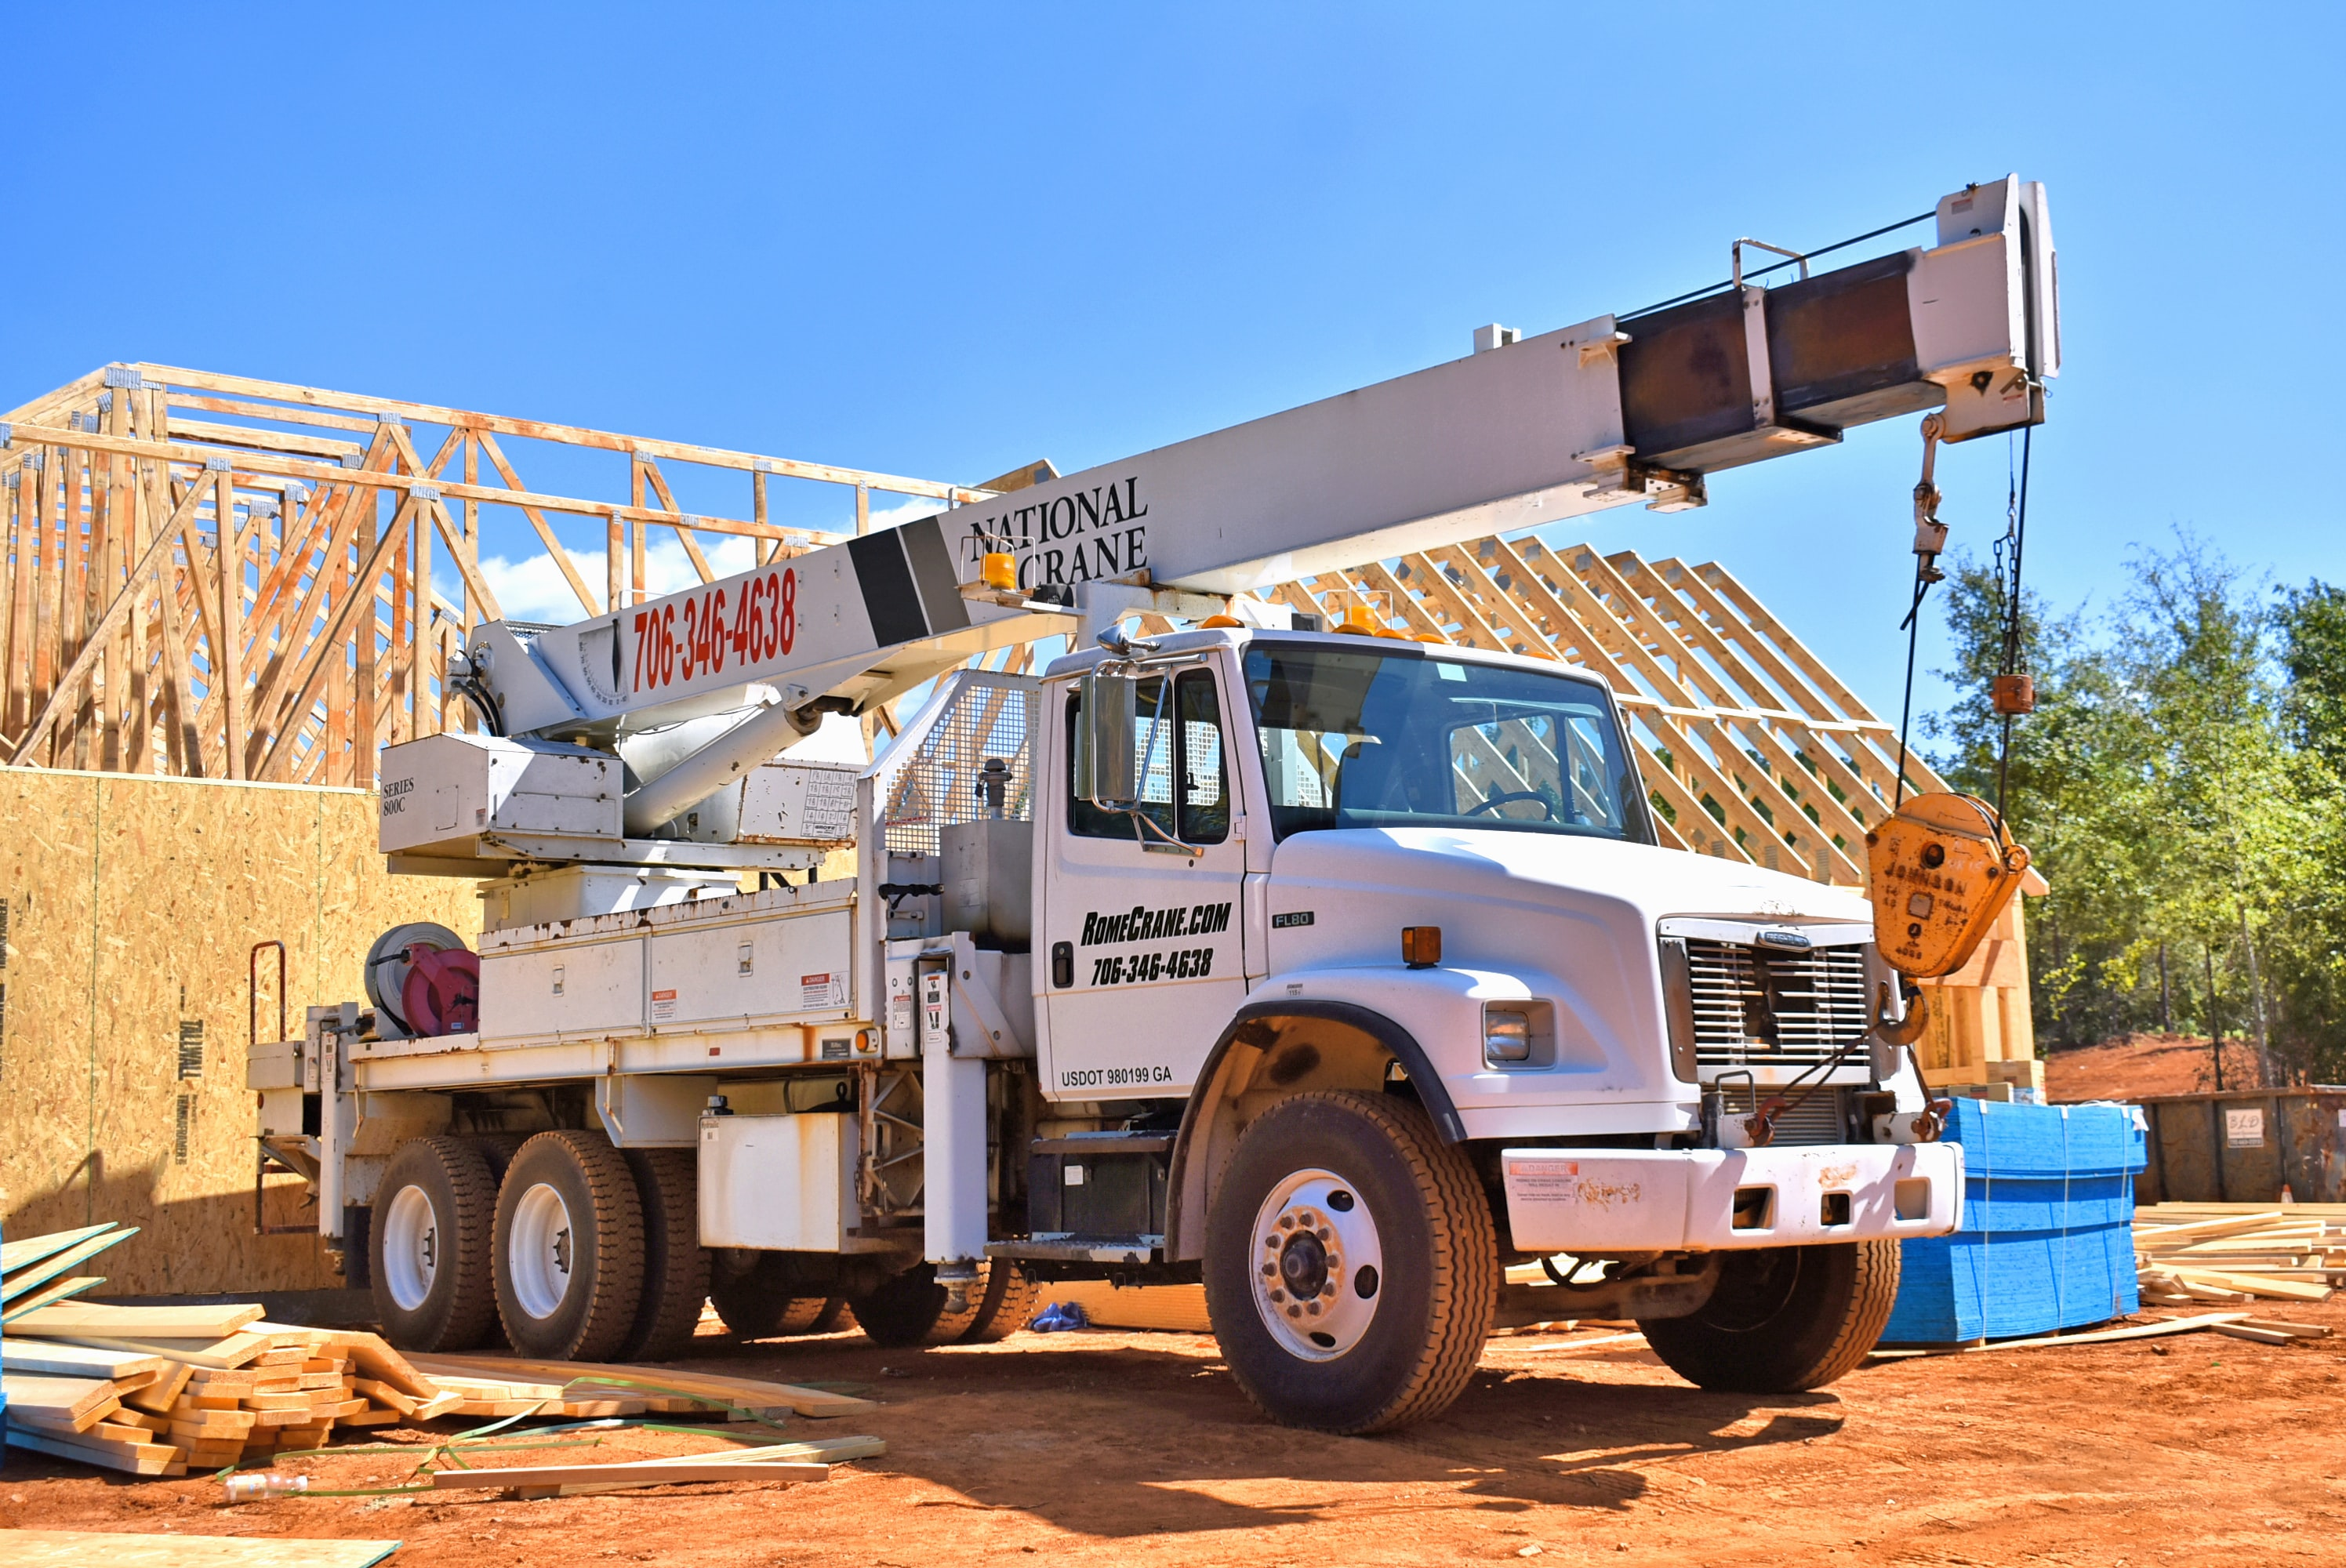 Crane truck at site of home renovation; image by Chris Boyd, via Unsplash.com.